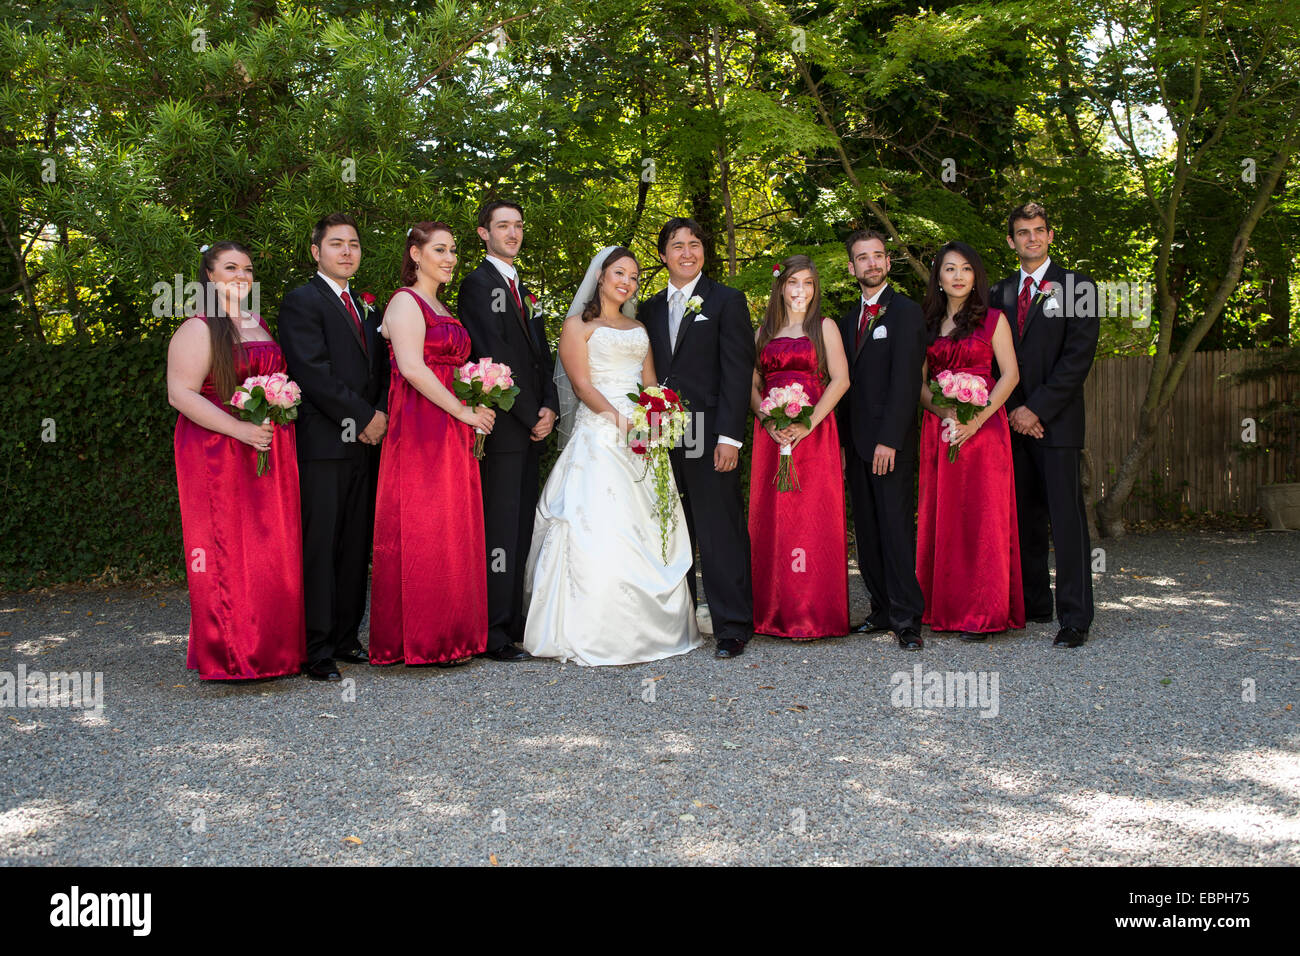 Bride and groom bridesmaids groomsmen at wedding at the Marin Art and Garden Center in the city of Ross in Marin Stock Photo